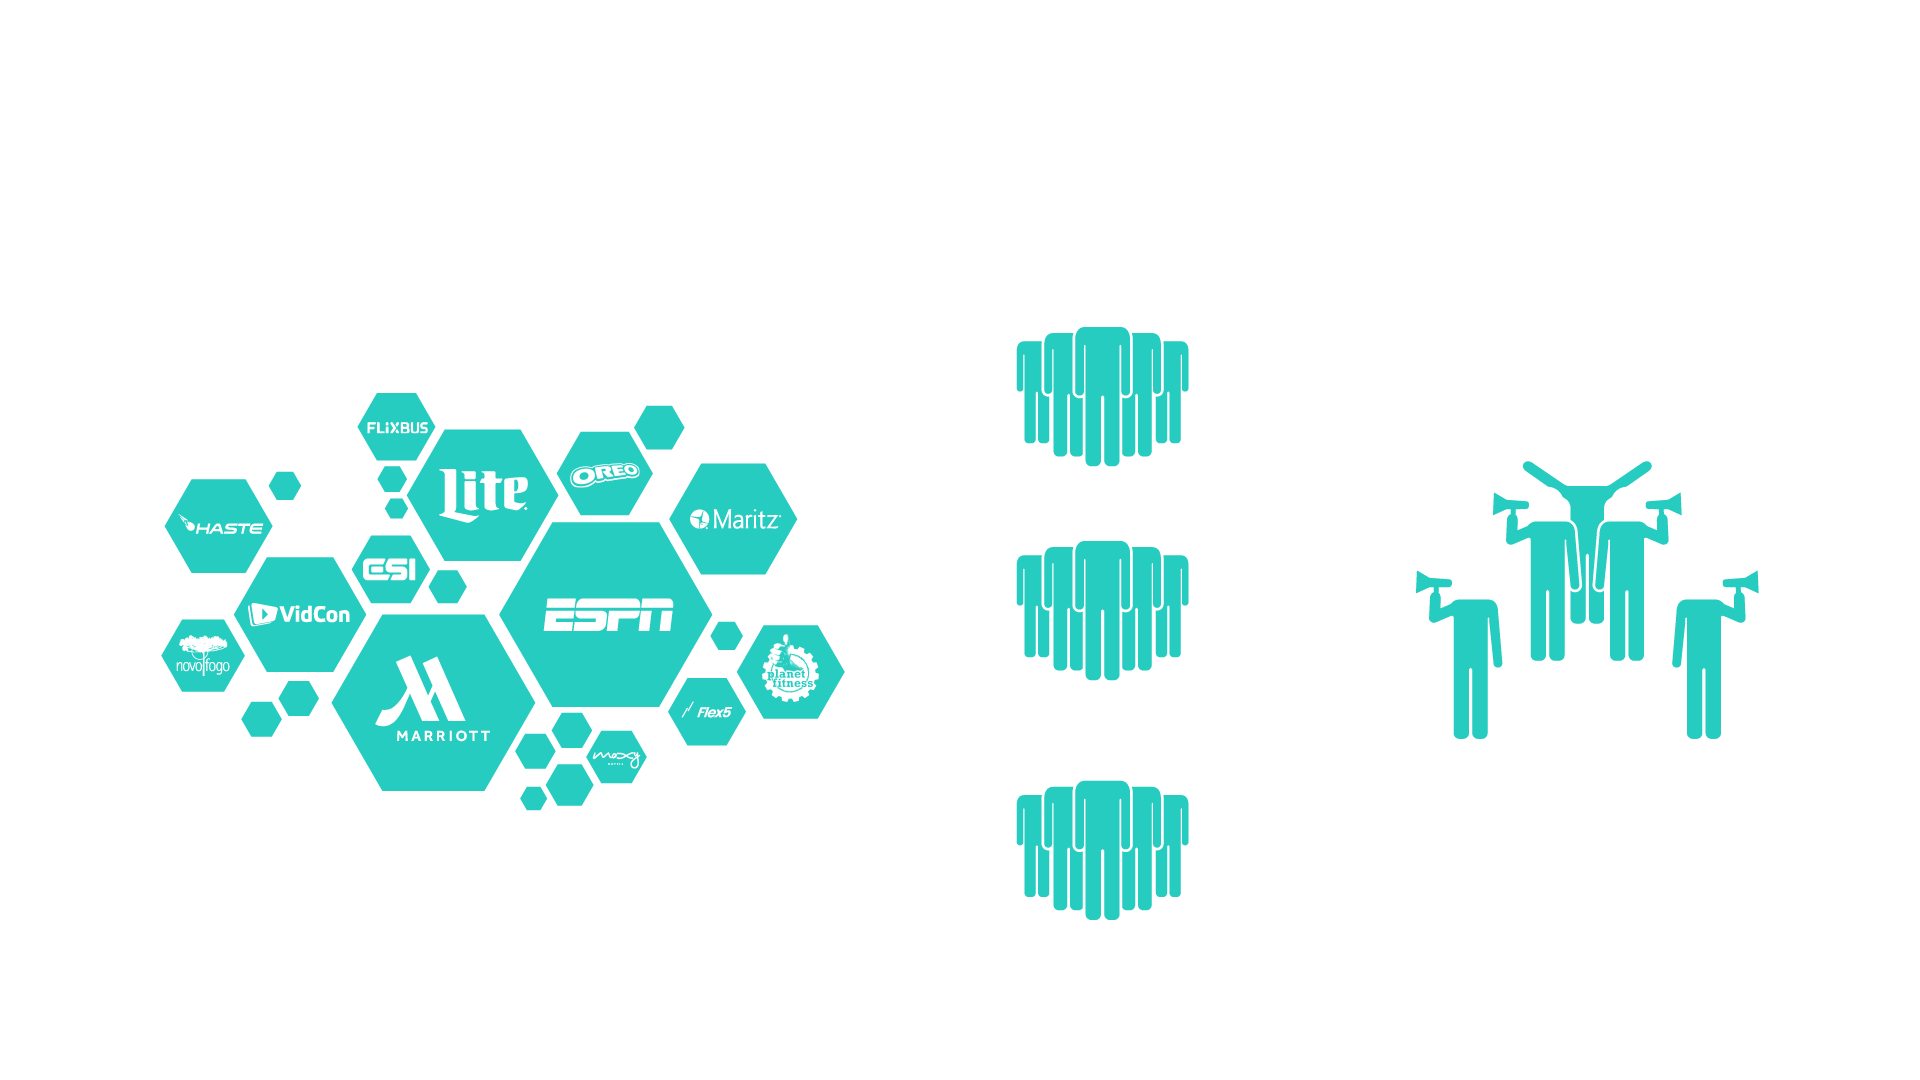 brands, teams, and influencers